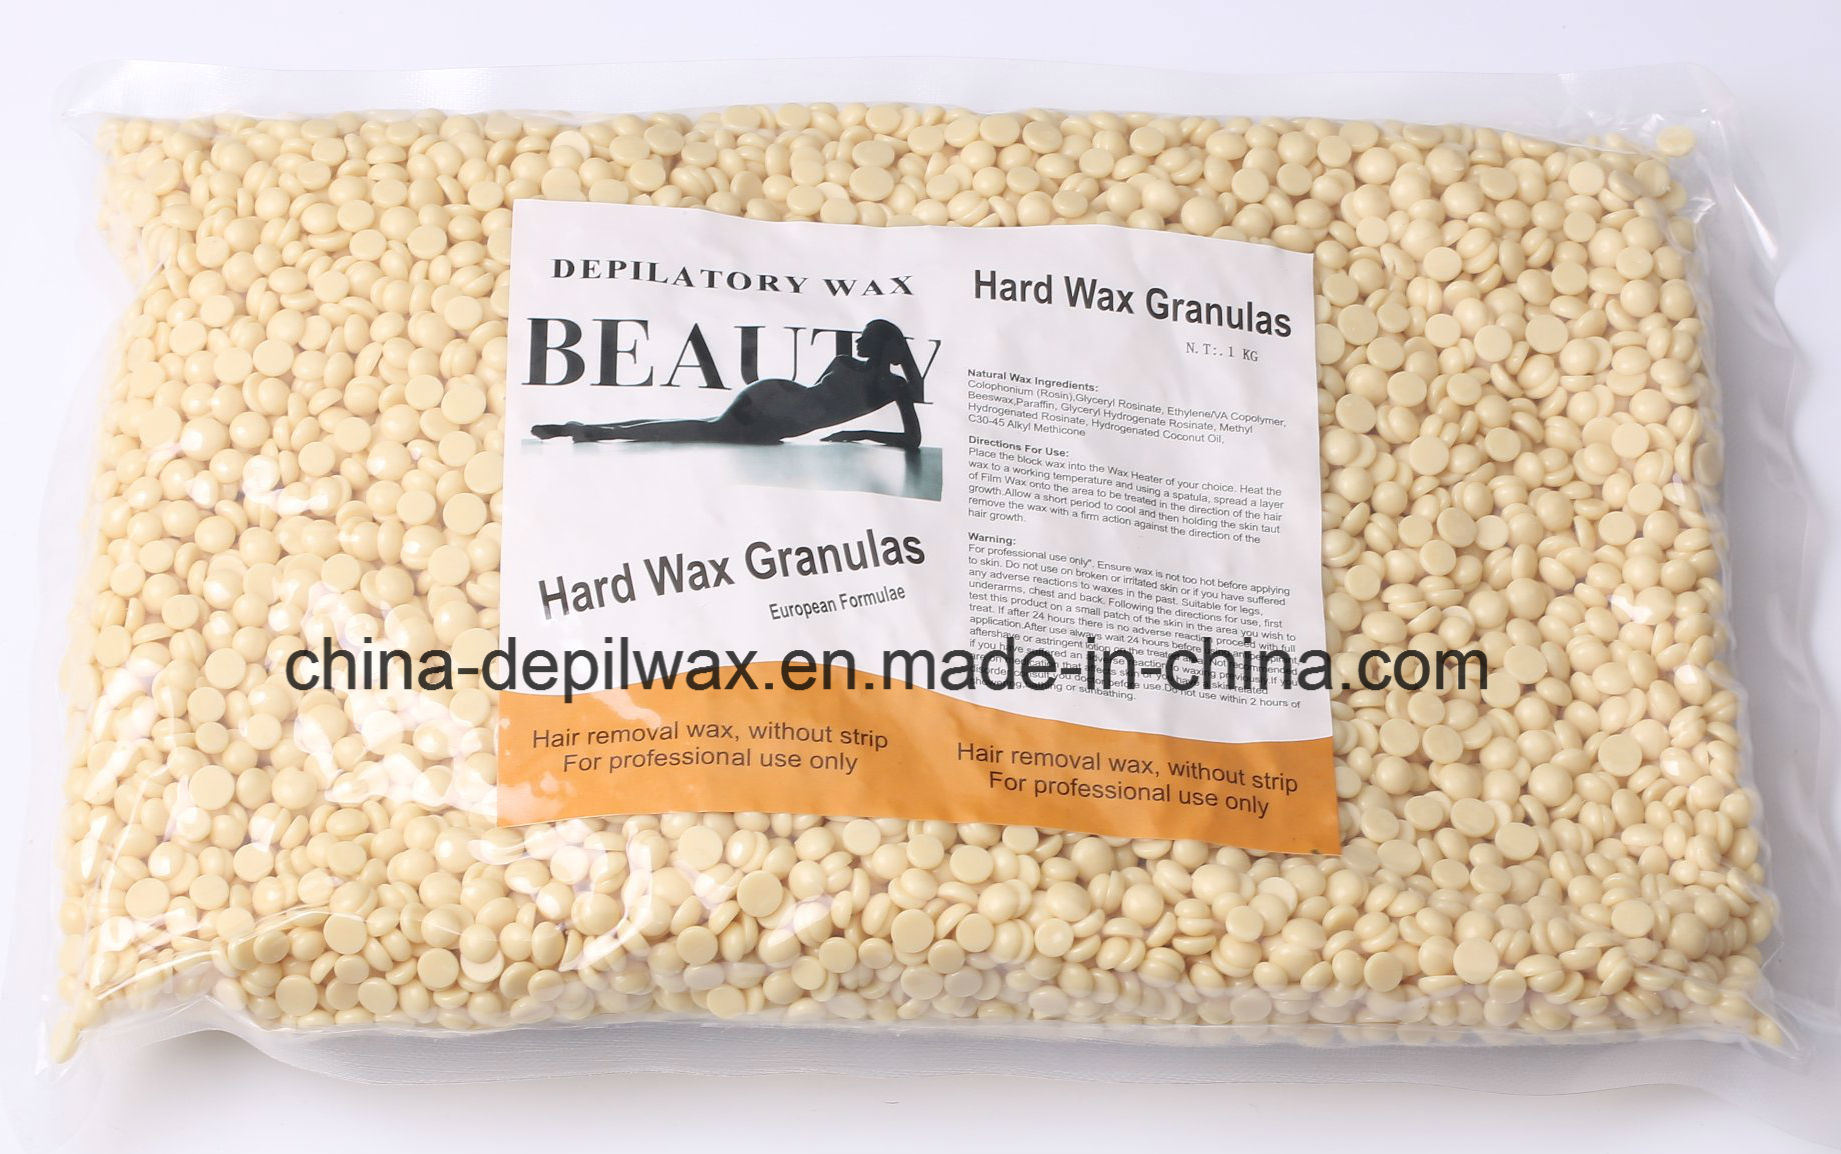 Tea Tree Hard Wax Pellets Depilatory Wax for Bikini Waxing